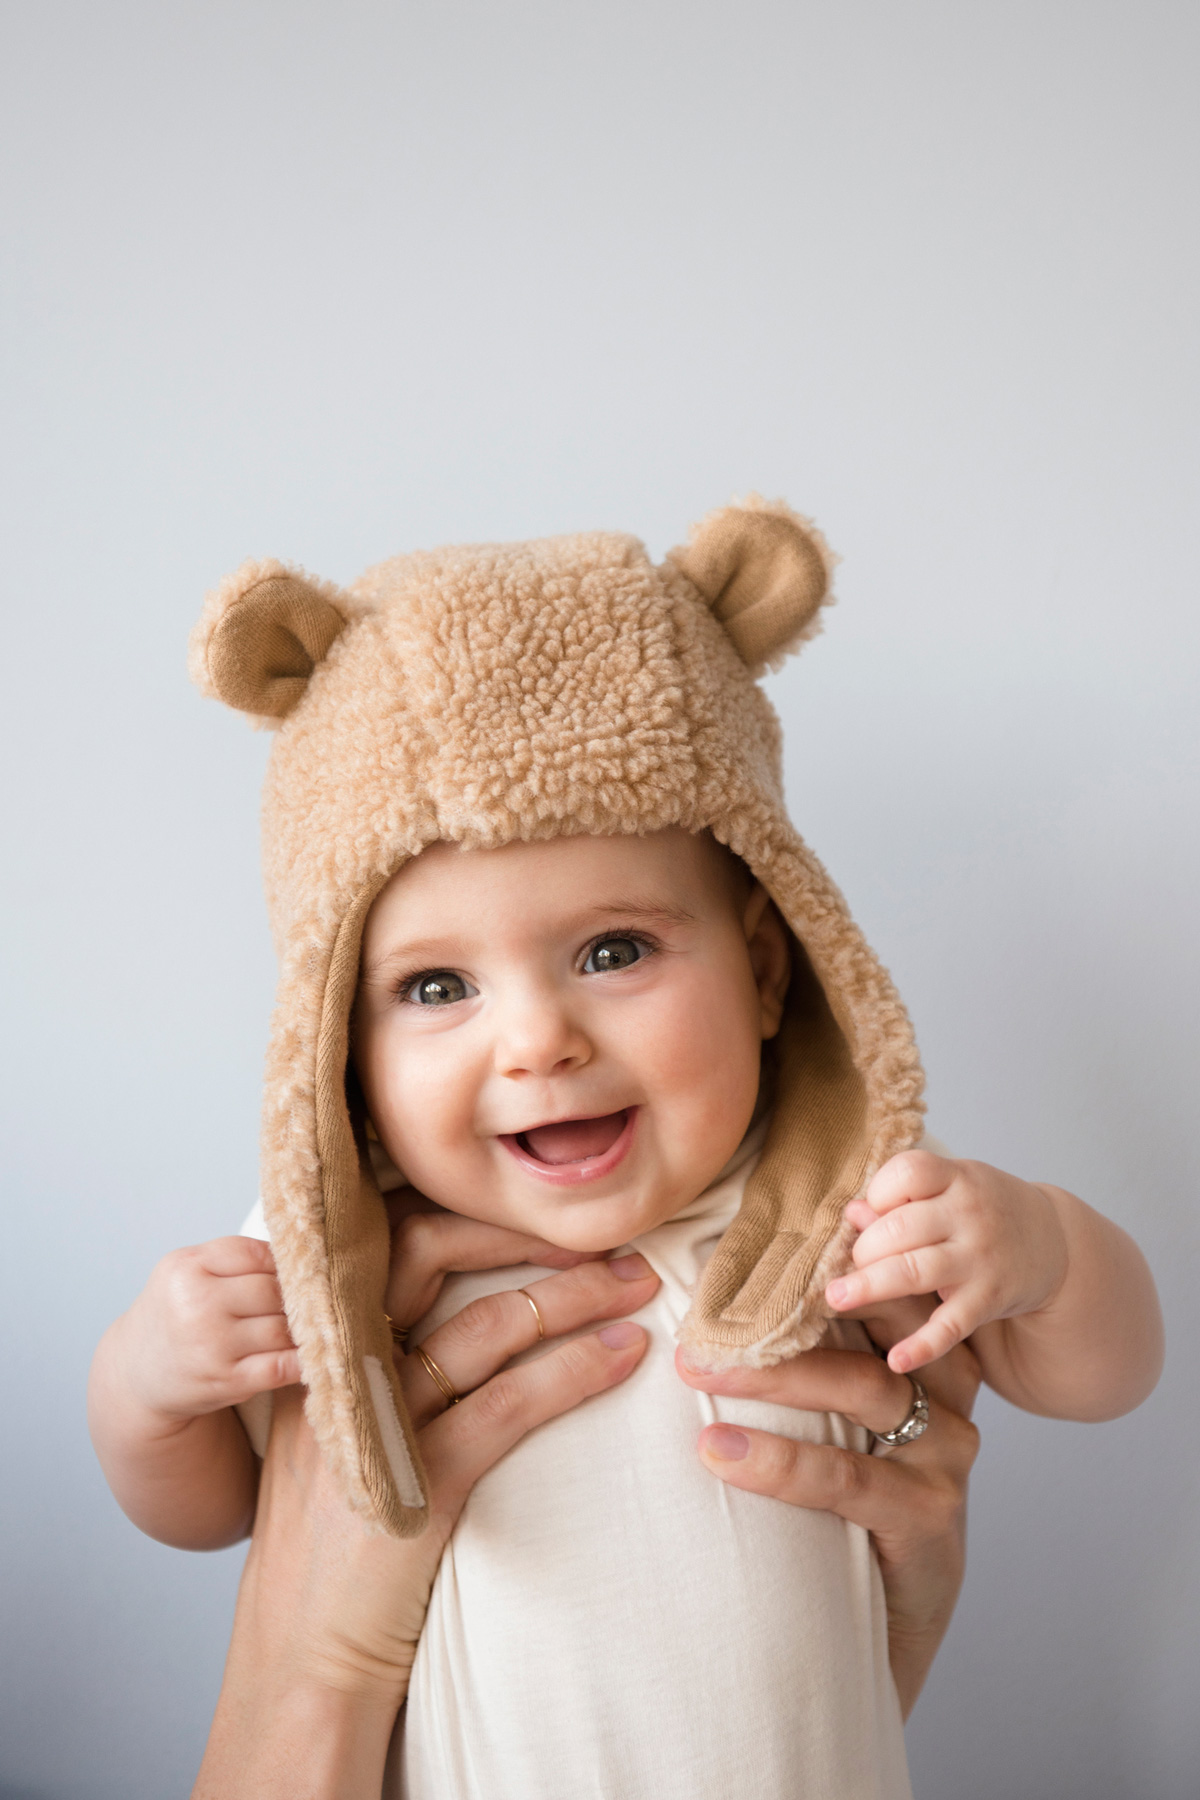 Trendy baby with hat on